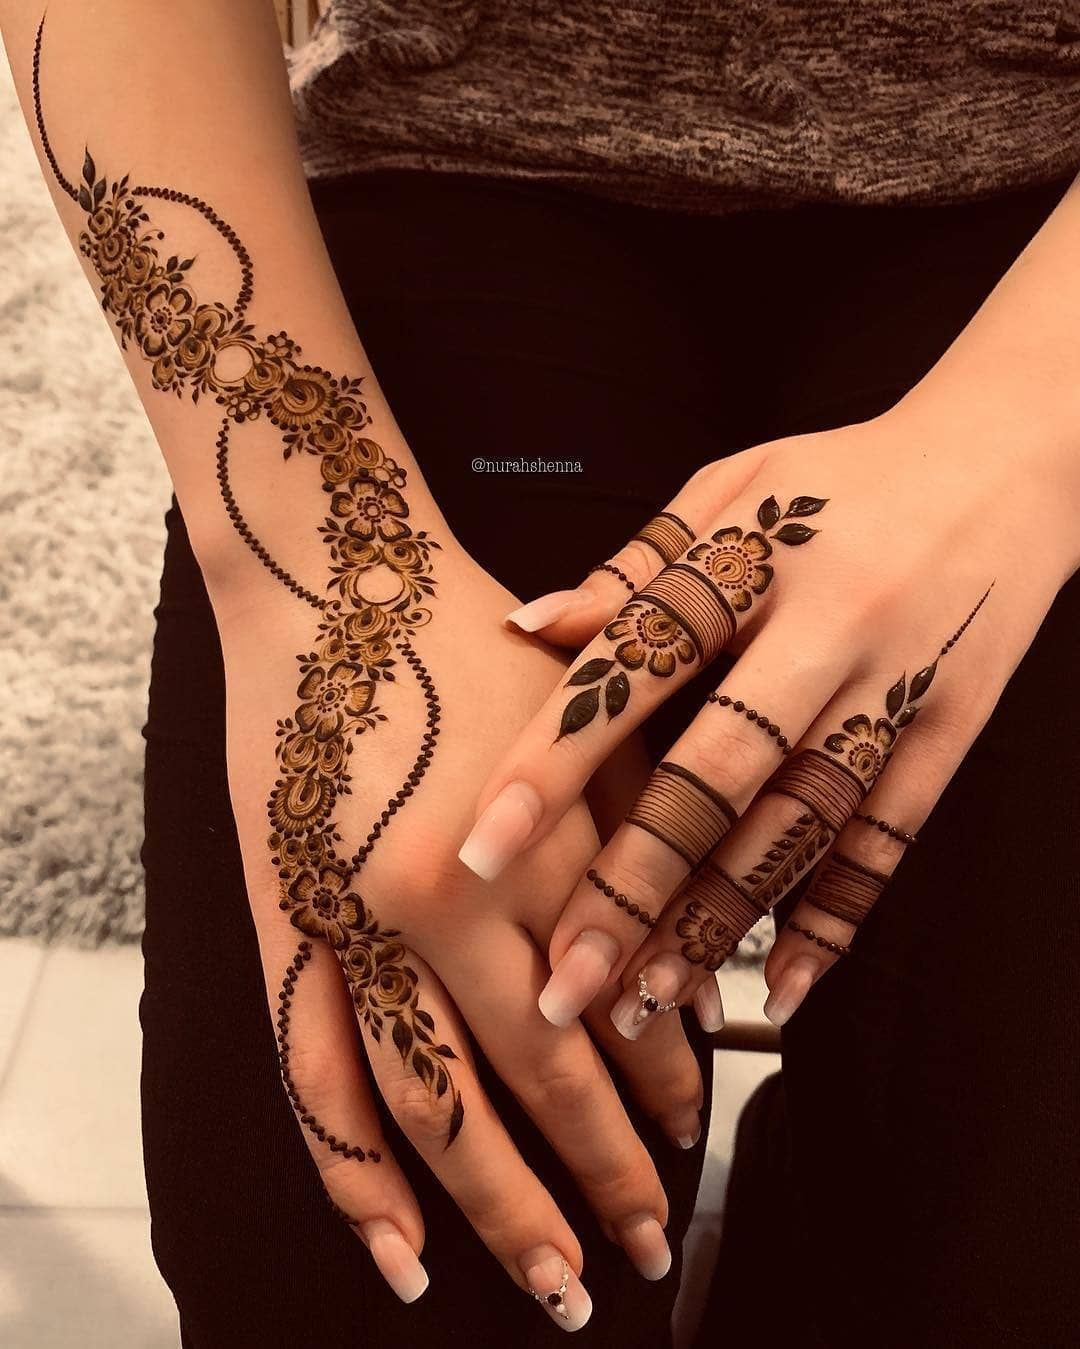 Henna Tattoo Design Ideas For Women Hand And More Henna Tattoo Designs Henna Tattoo Idea Henna Tattoo Vorlagen Henna Tattoo Ideen Henna Tatowierung Designs